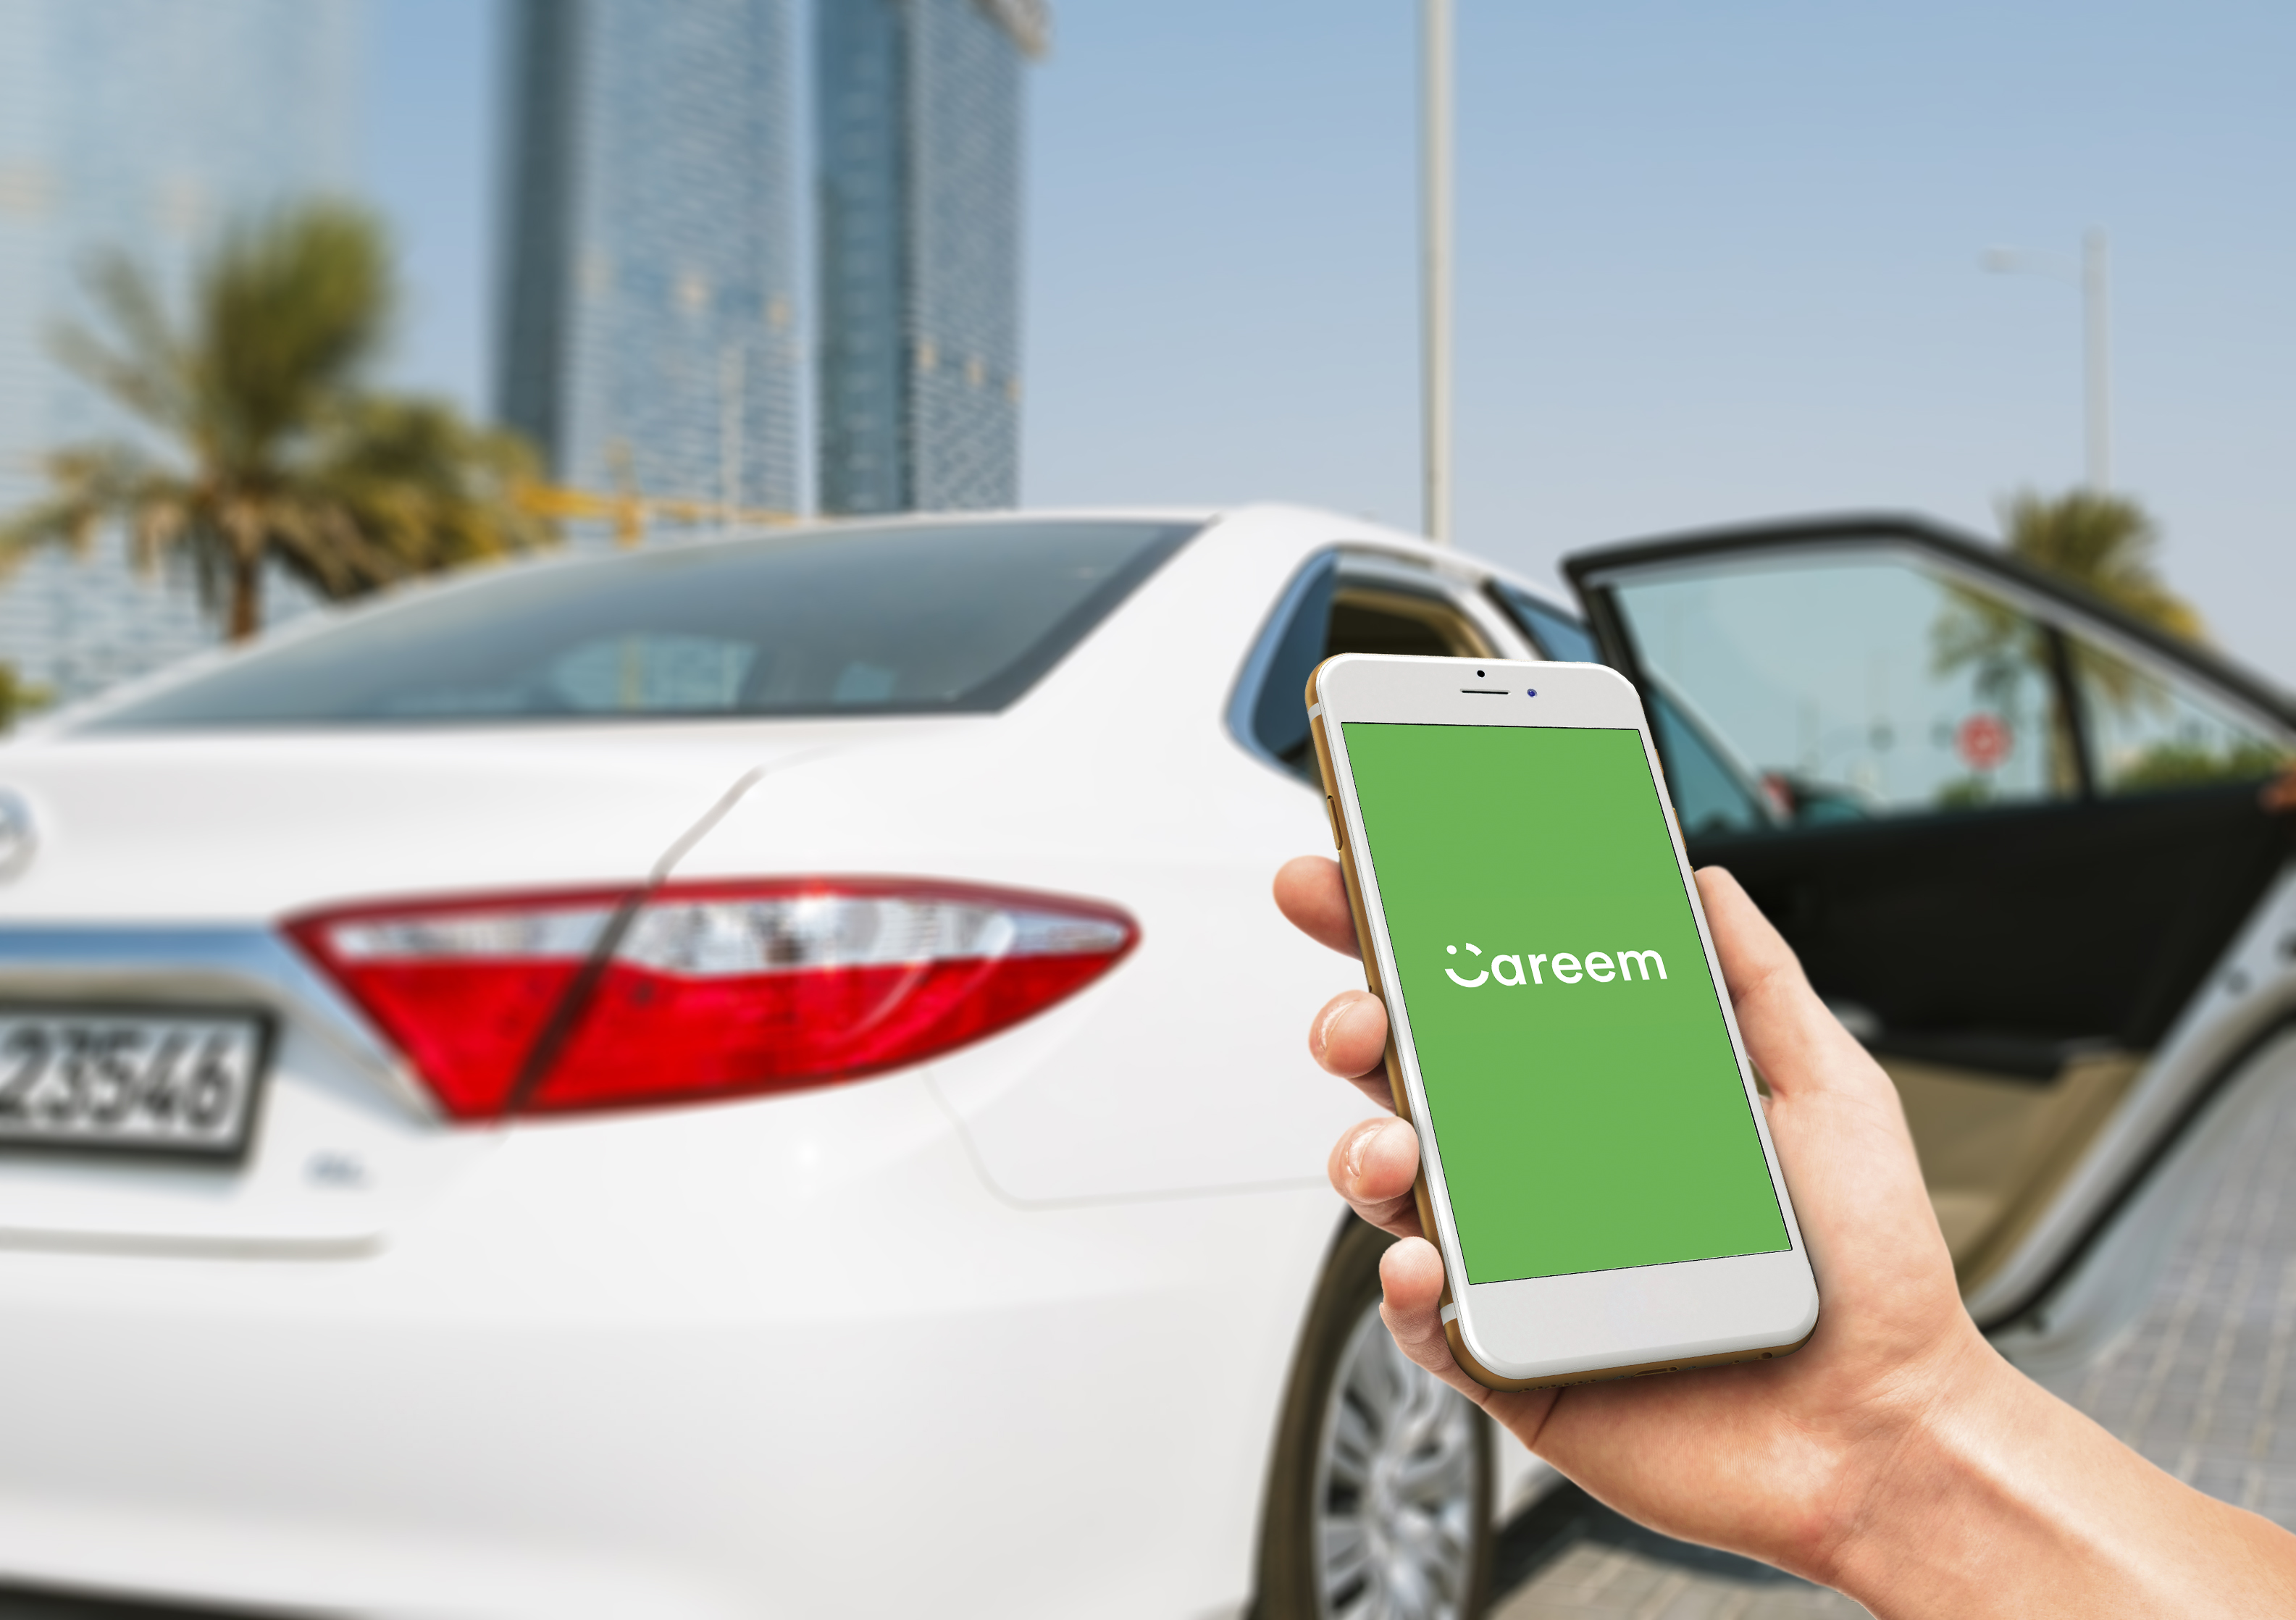 Users personal data on Careem's app breached in a cyber-attack,